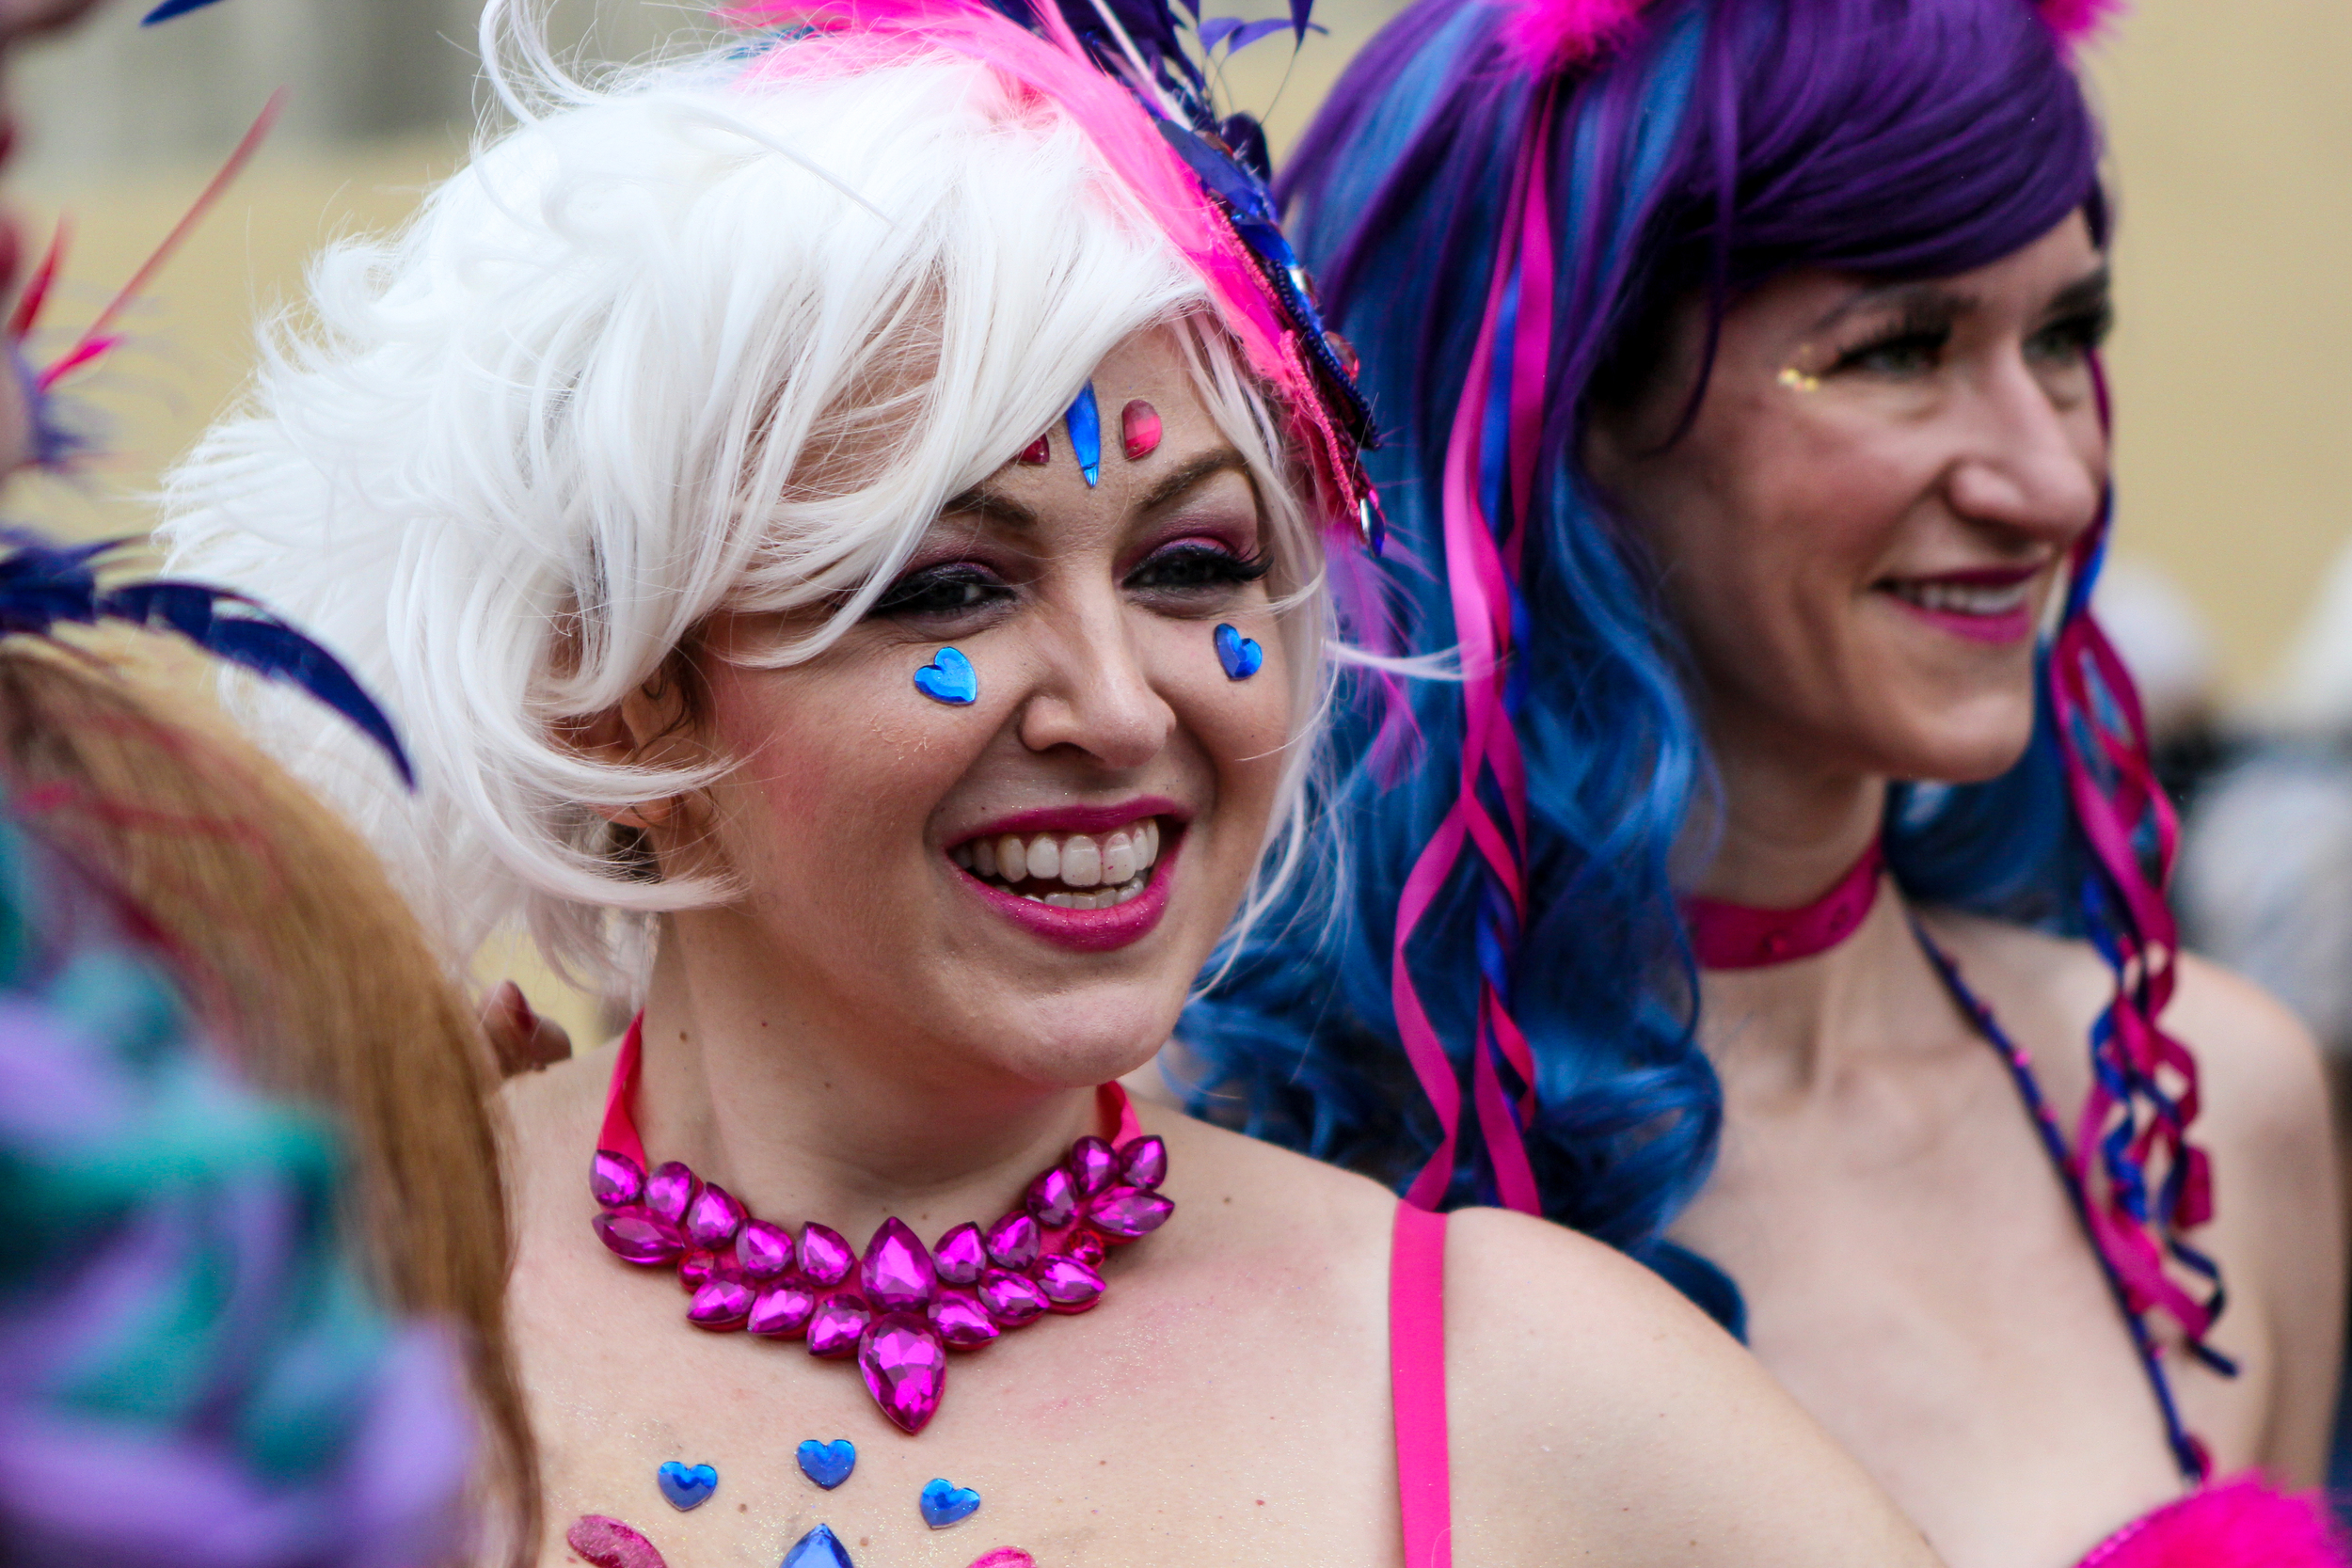 Costumed revelers take part in the annual Mermaid Parade in Coney Island, New York on June 20, 2015.    Shot for the Village Voice.